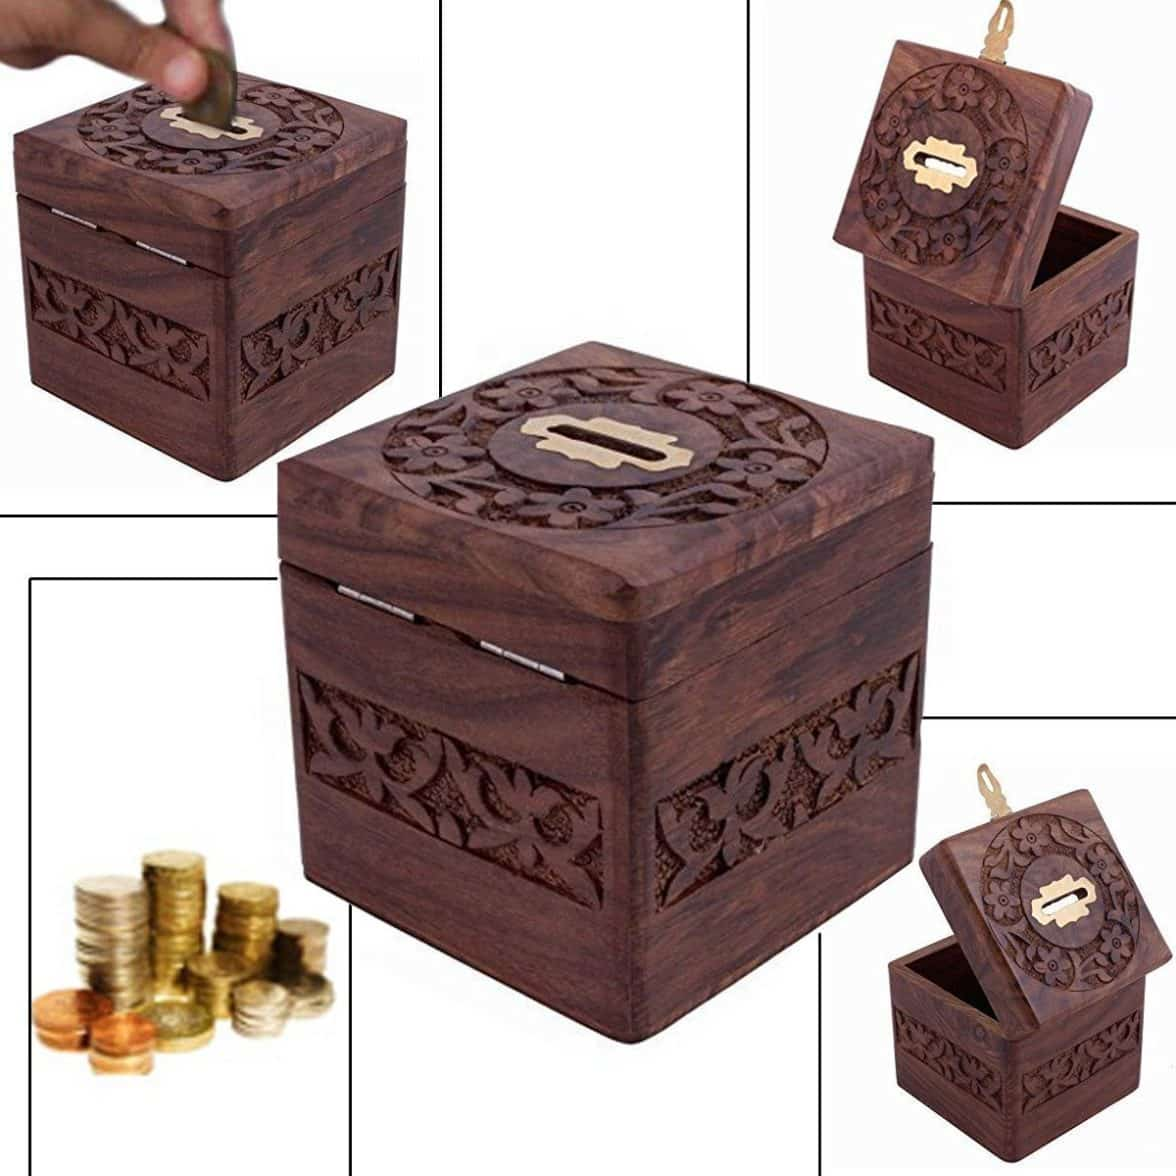 Buy Money Box Buy Thanks Giving Gift For Loved Ones Unique Gift Items